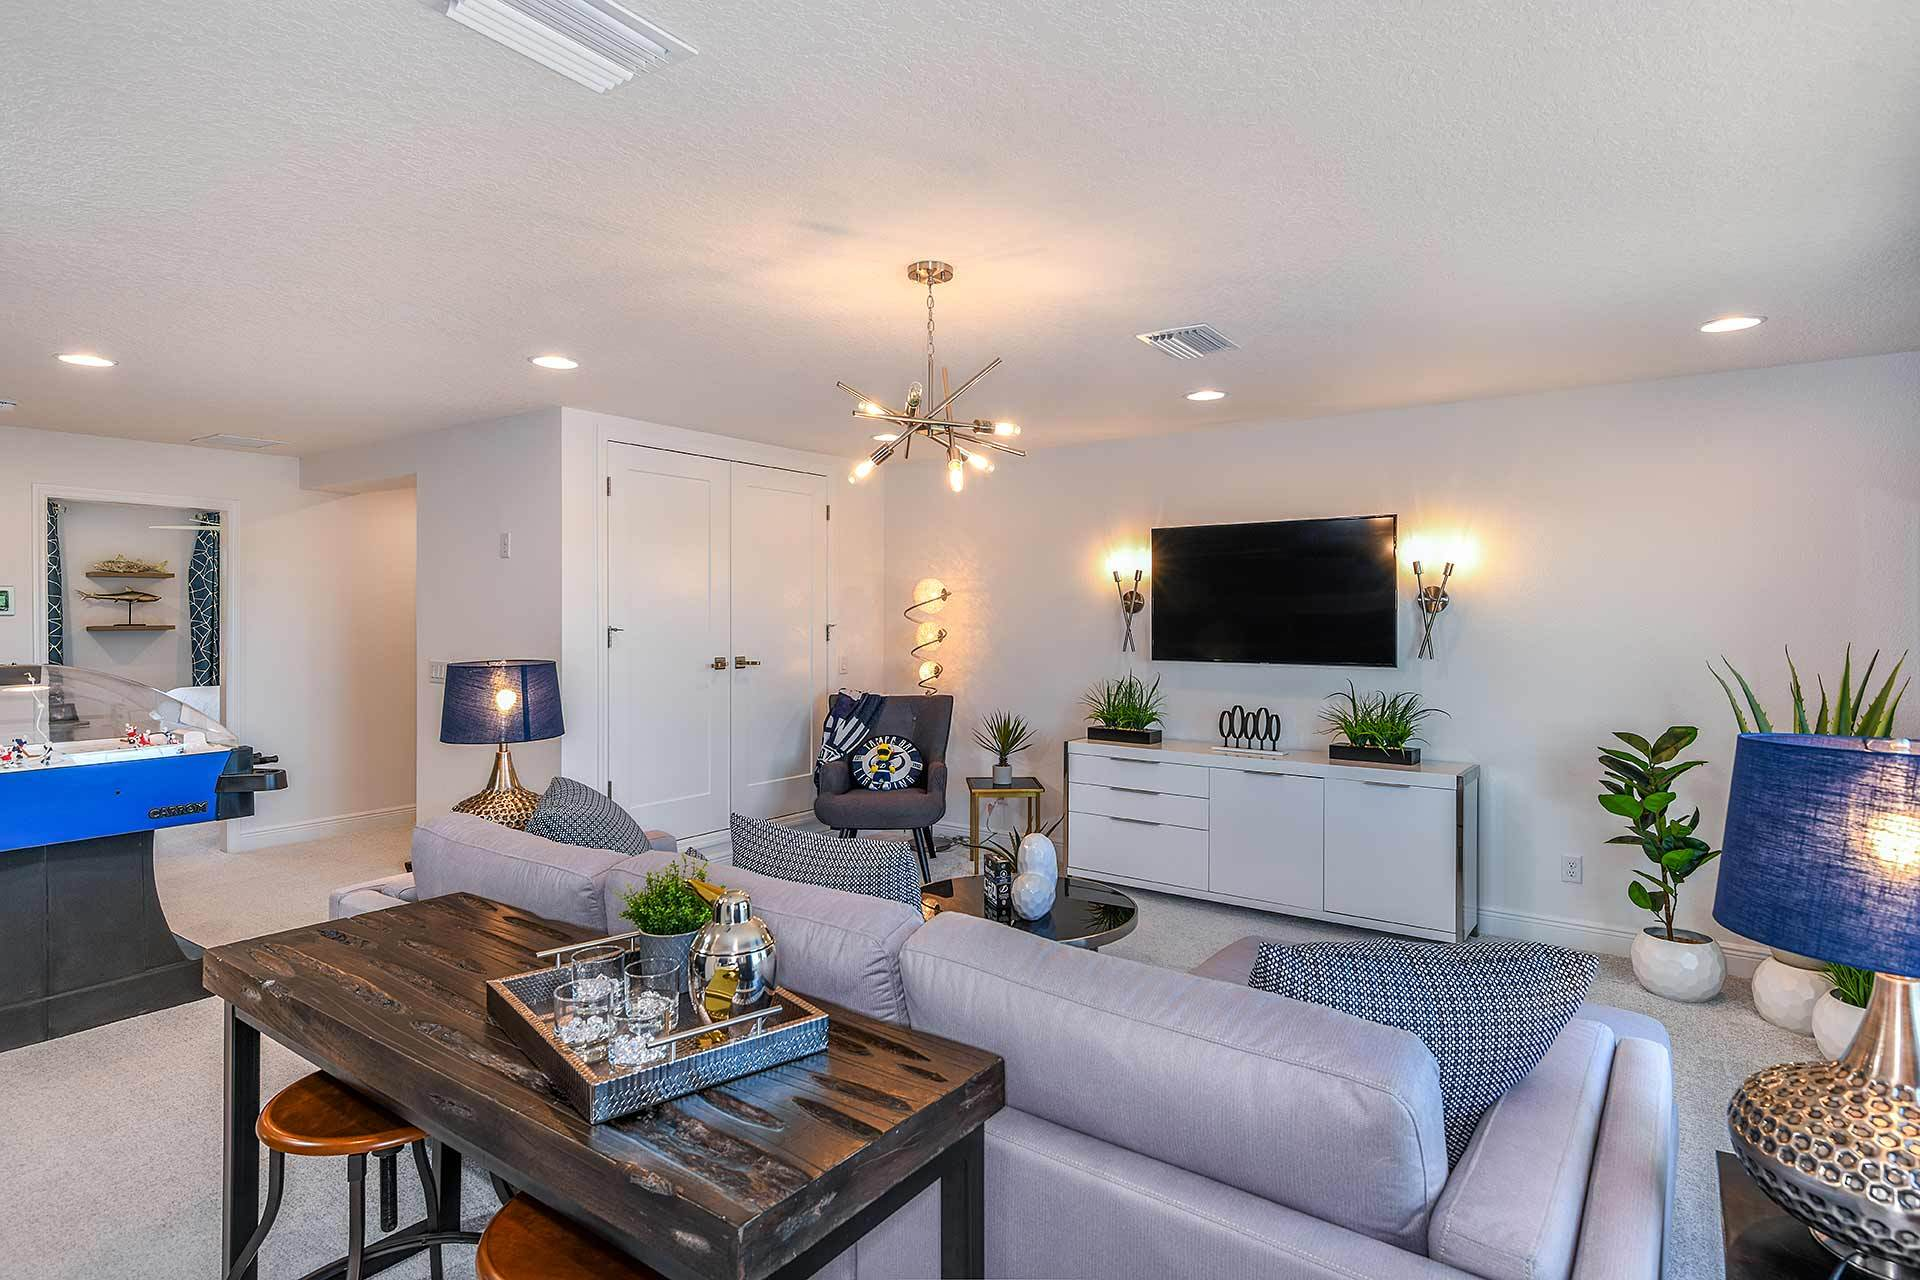 Living Area featured in the Virginia Park By Homes by WestBay in Tampa-St. Petersburg, FL